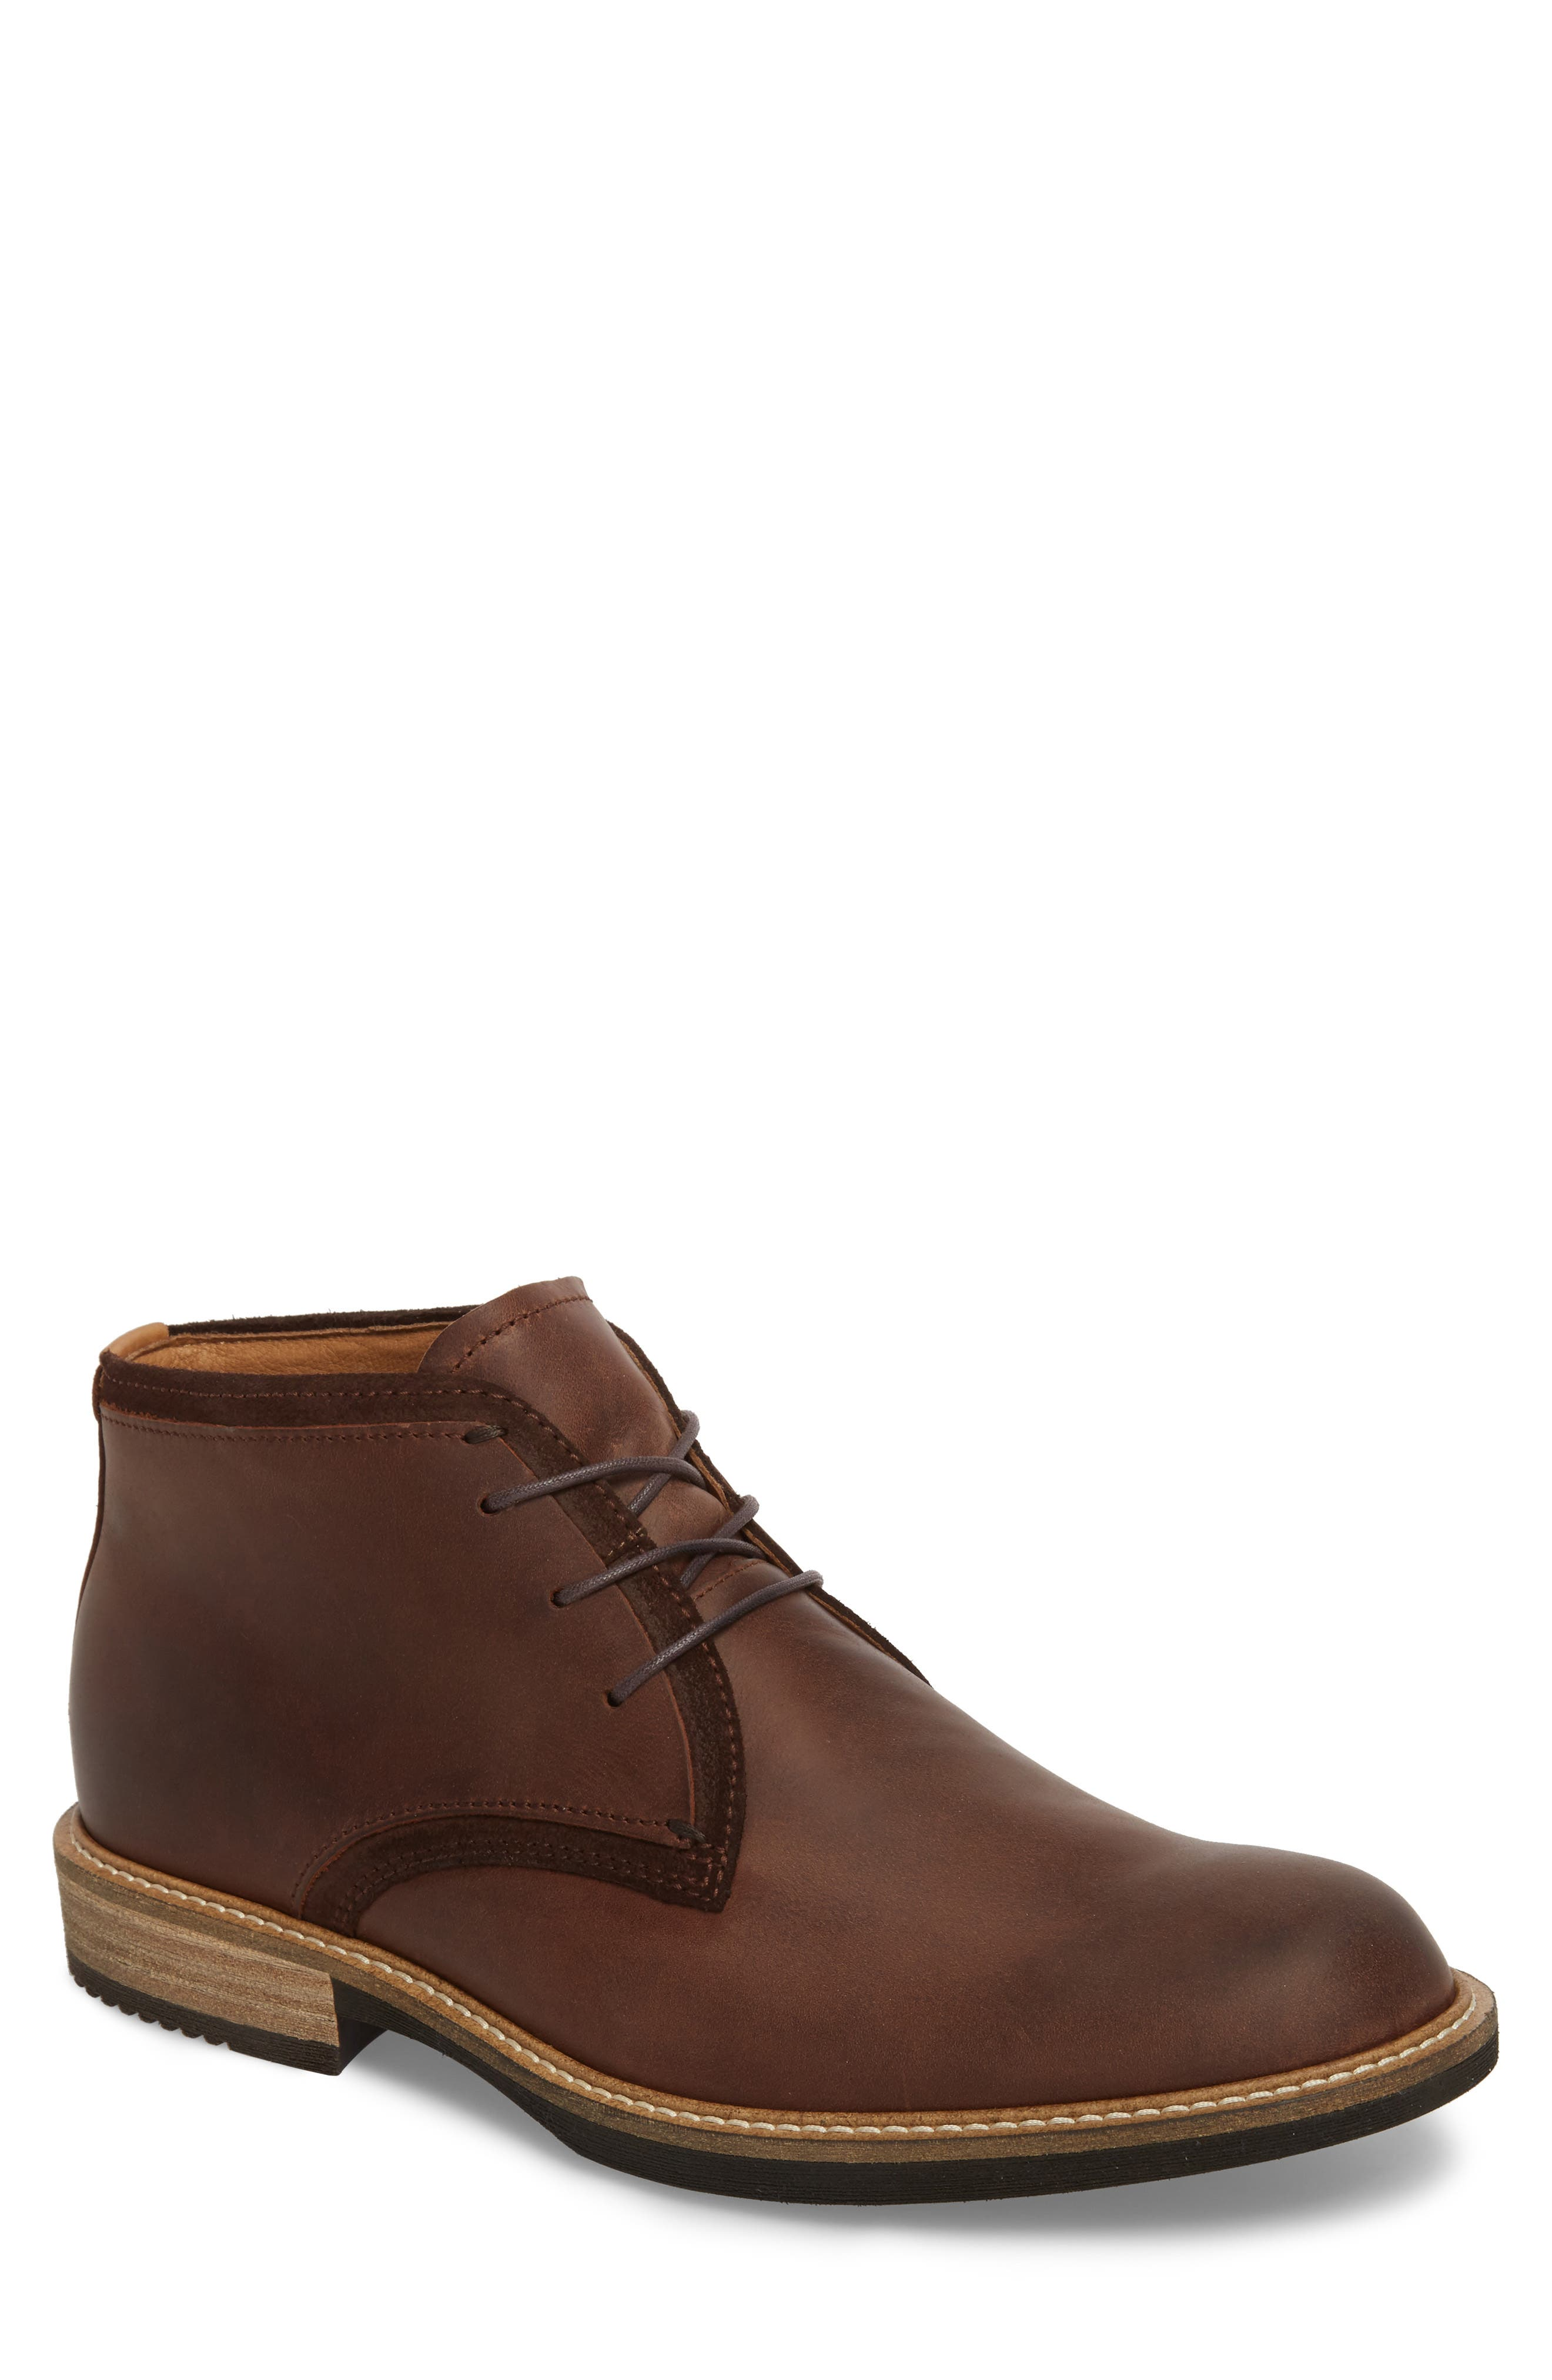 Kenton Derby Chukka Boot,                         Main,                         color, Mink Leather